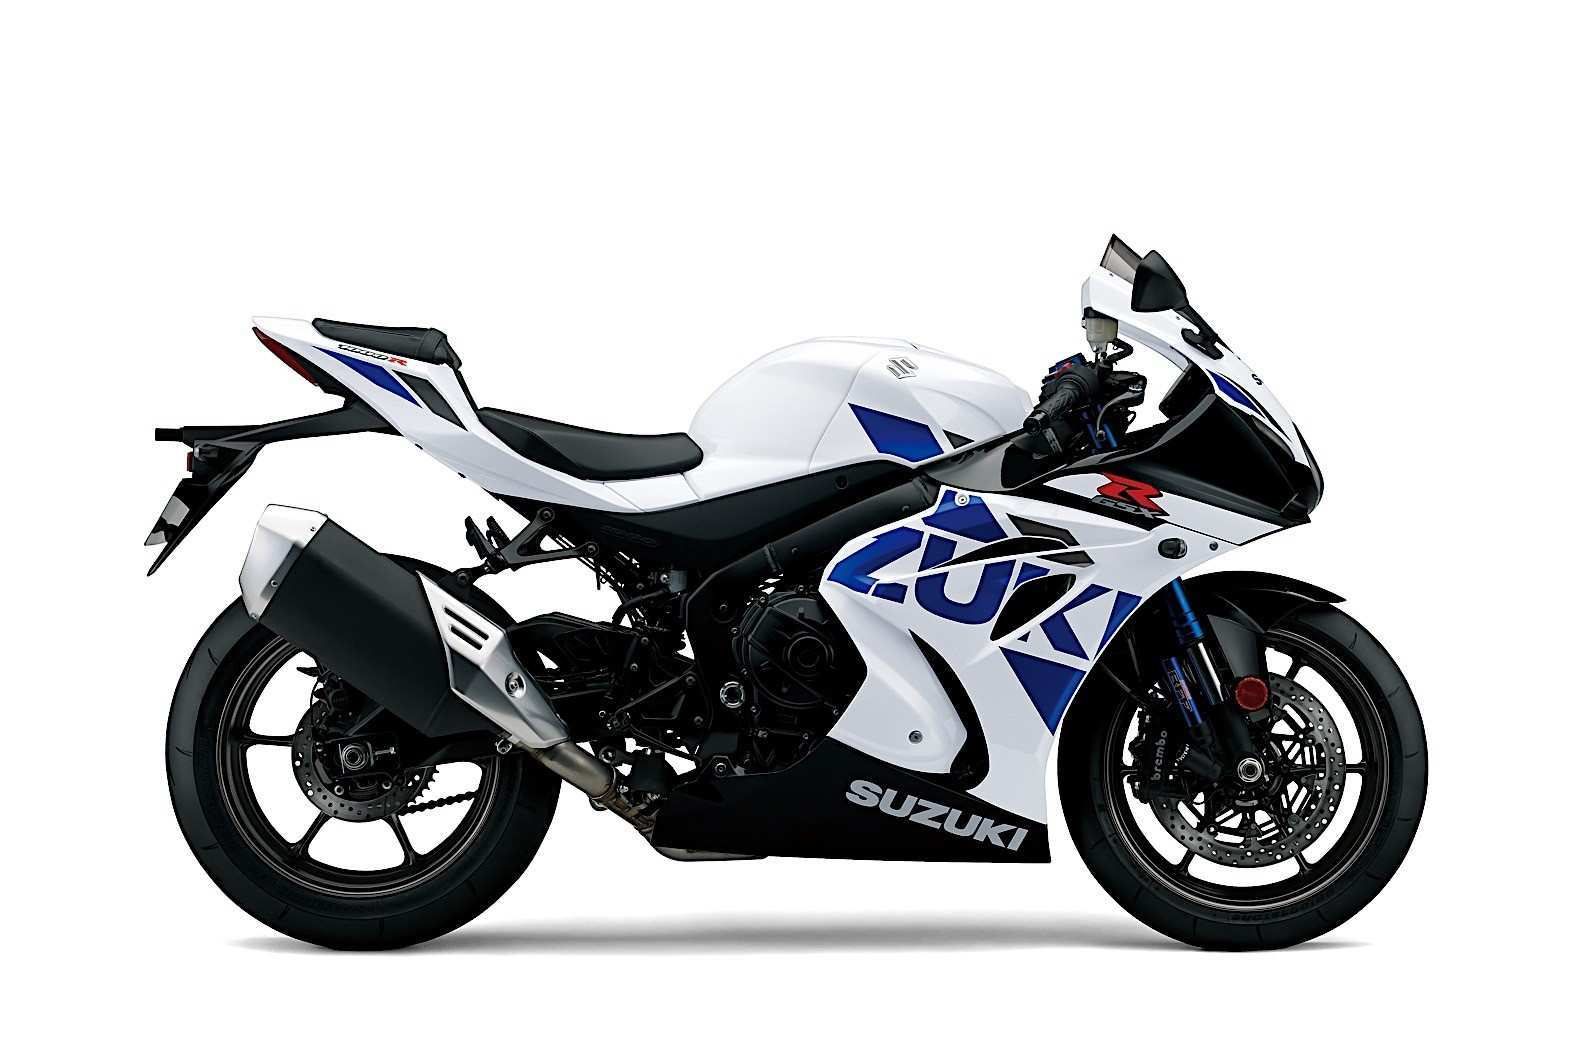 92 All New 2019 Suzuki Motorcycle Models Price And Review